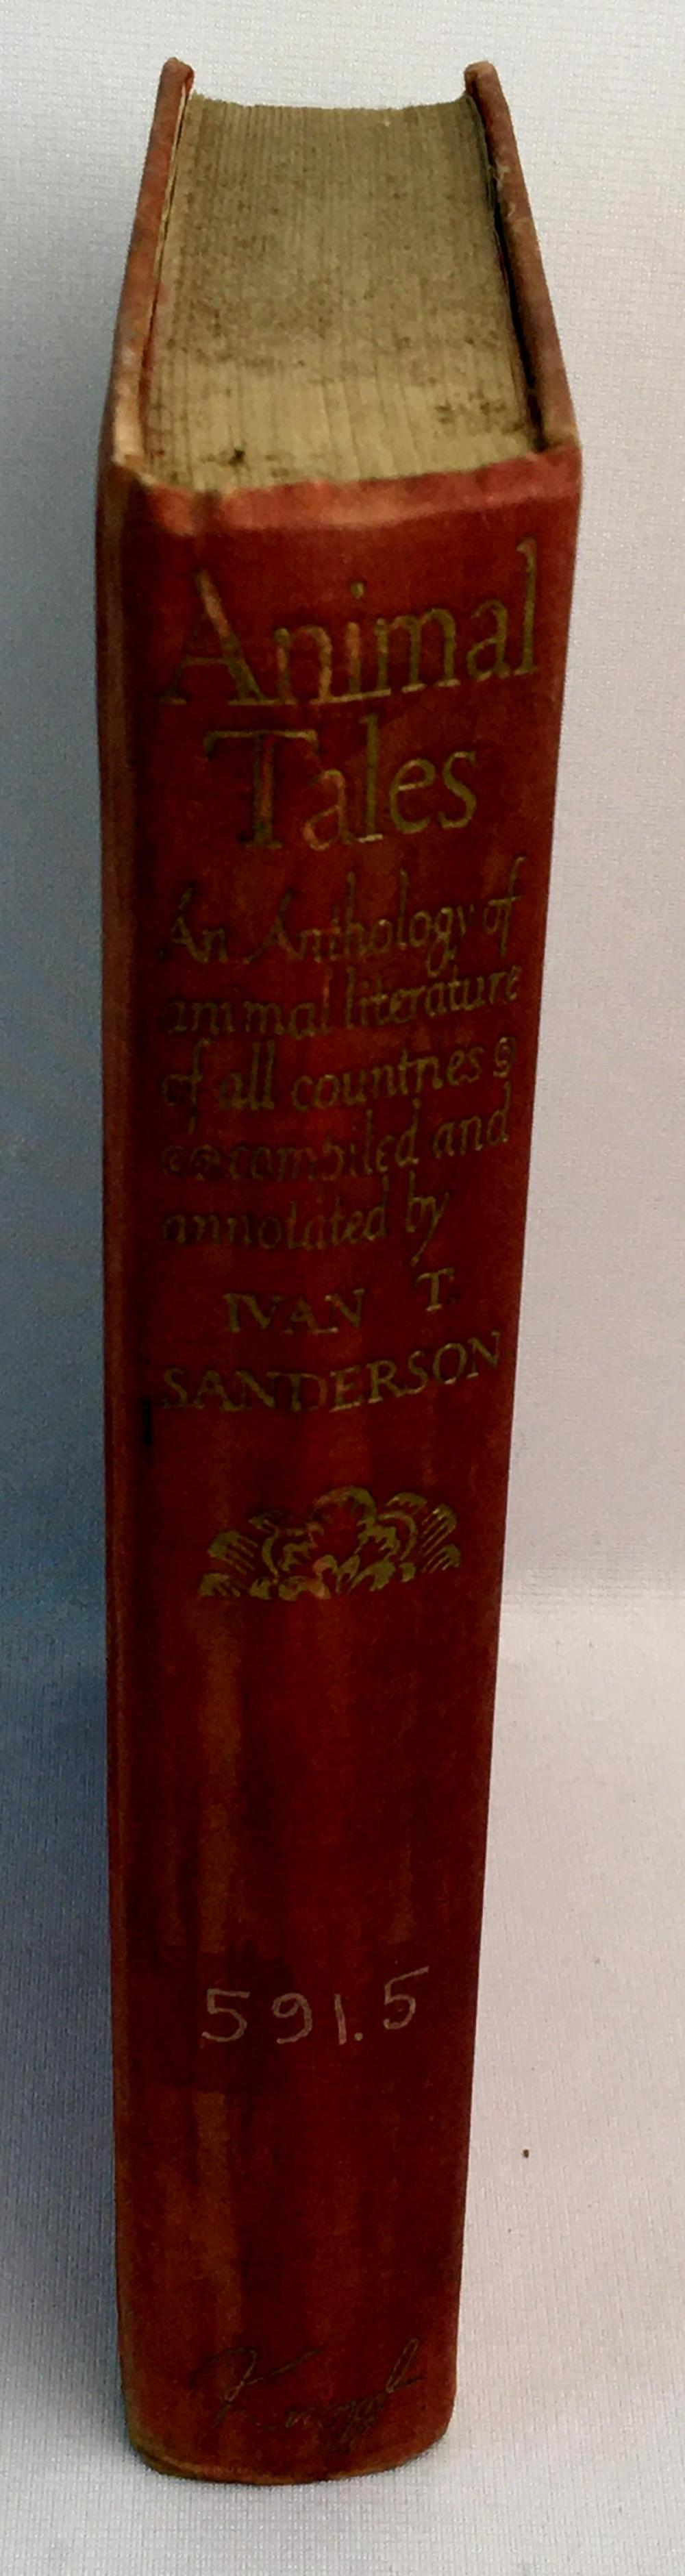 1946 Animal Tales: An Anthology of Animal Literature of All Countries Ivan T. Sanderson Illustrated FIRST EDITION